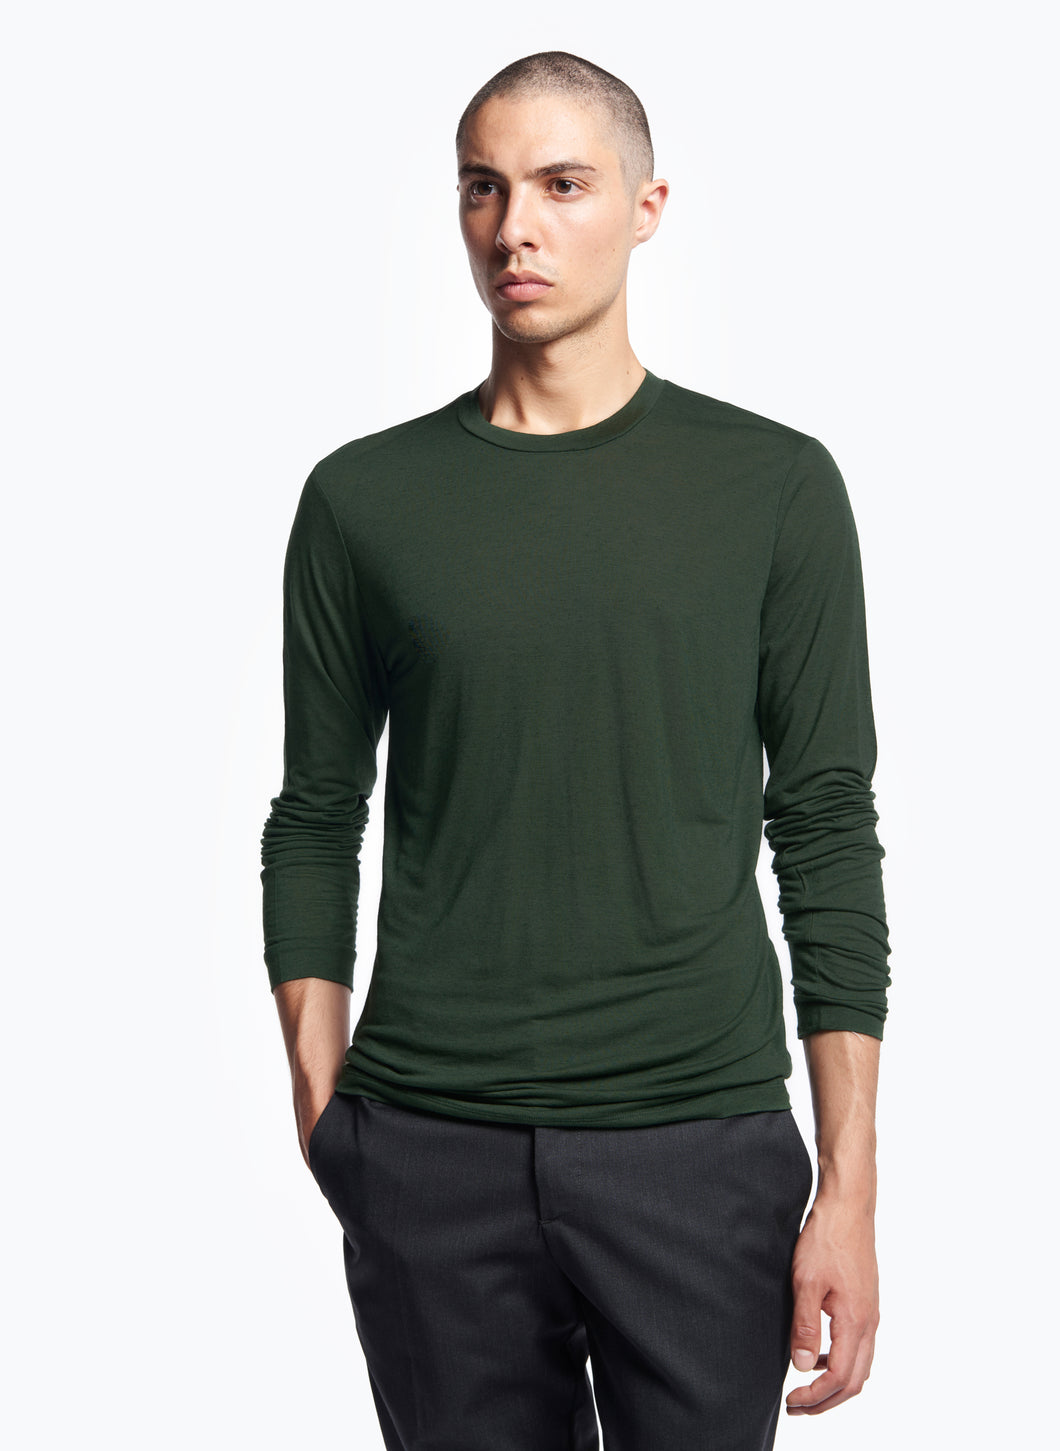 Long Sleeve Crew Neck T-Shirt in English Green Tencel